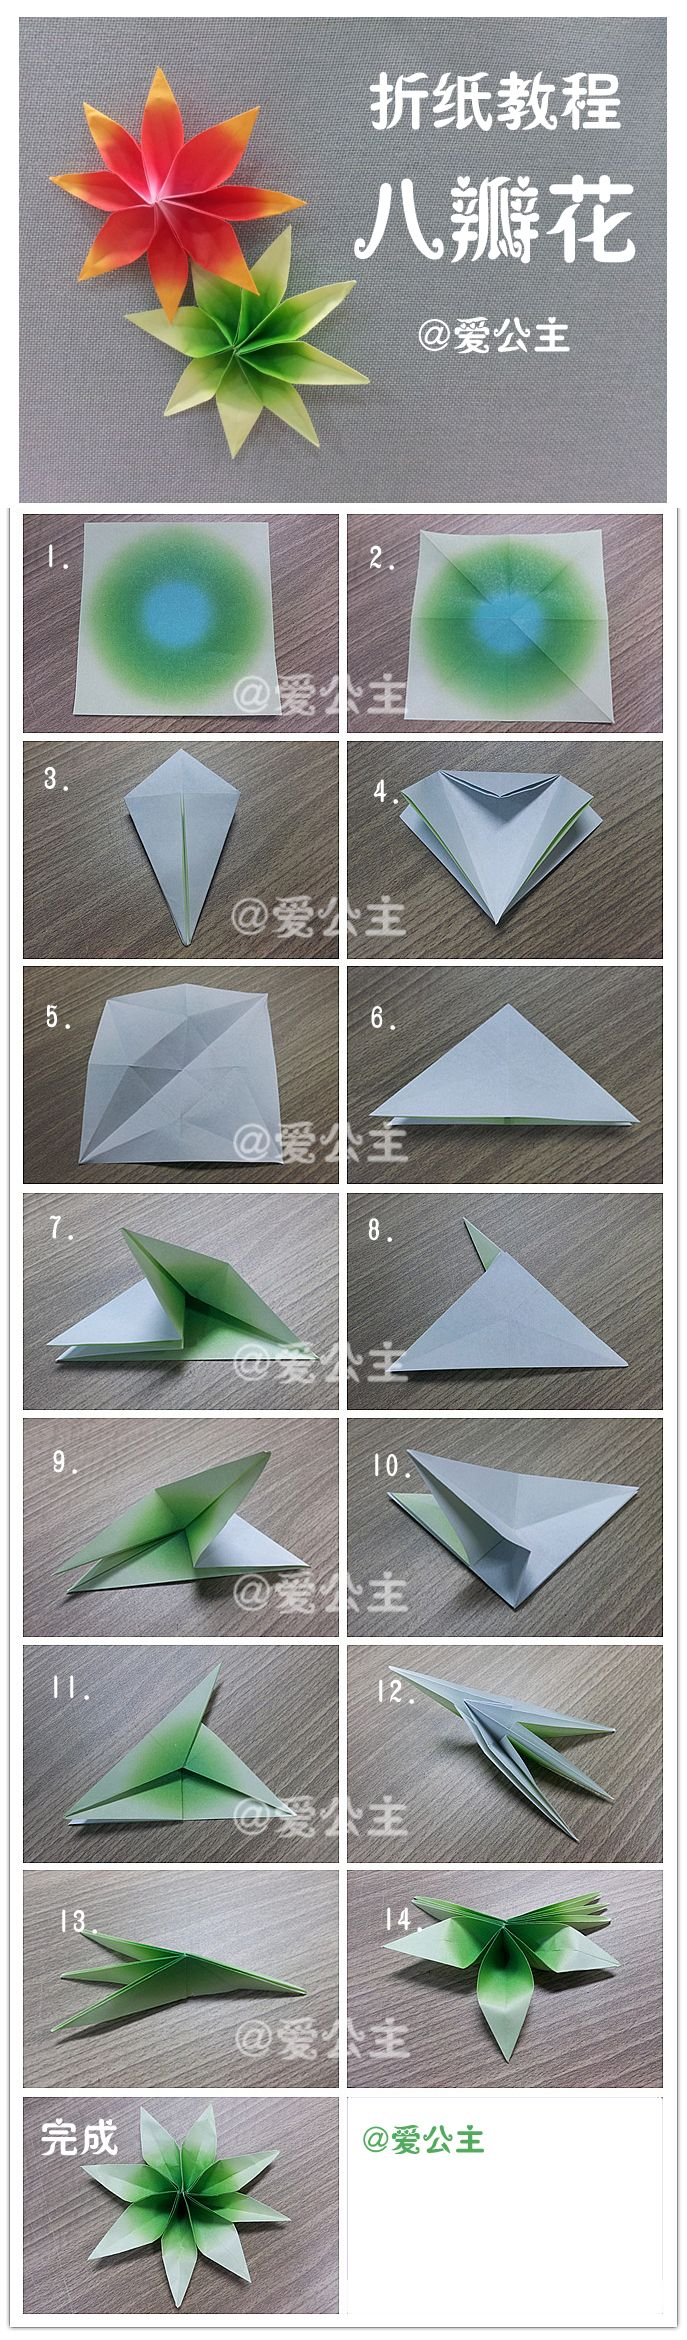 297 Best Origami Images On Pinterest Paper Crafts Papercraft And